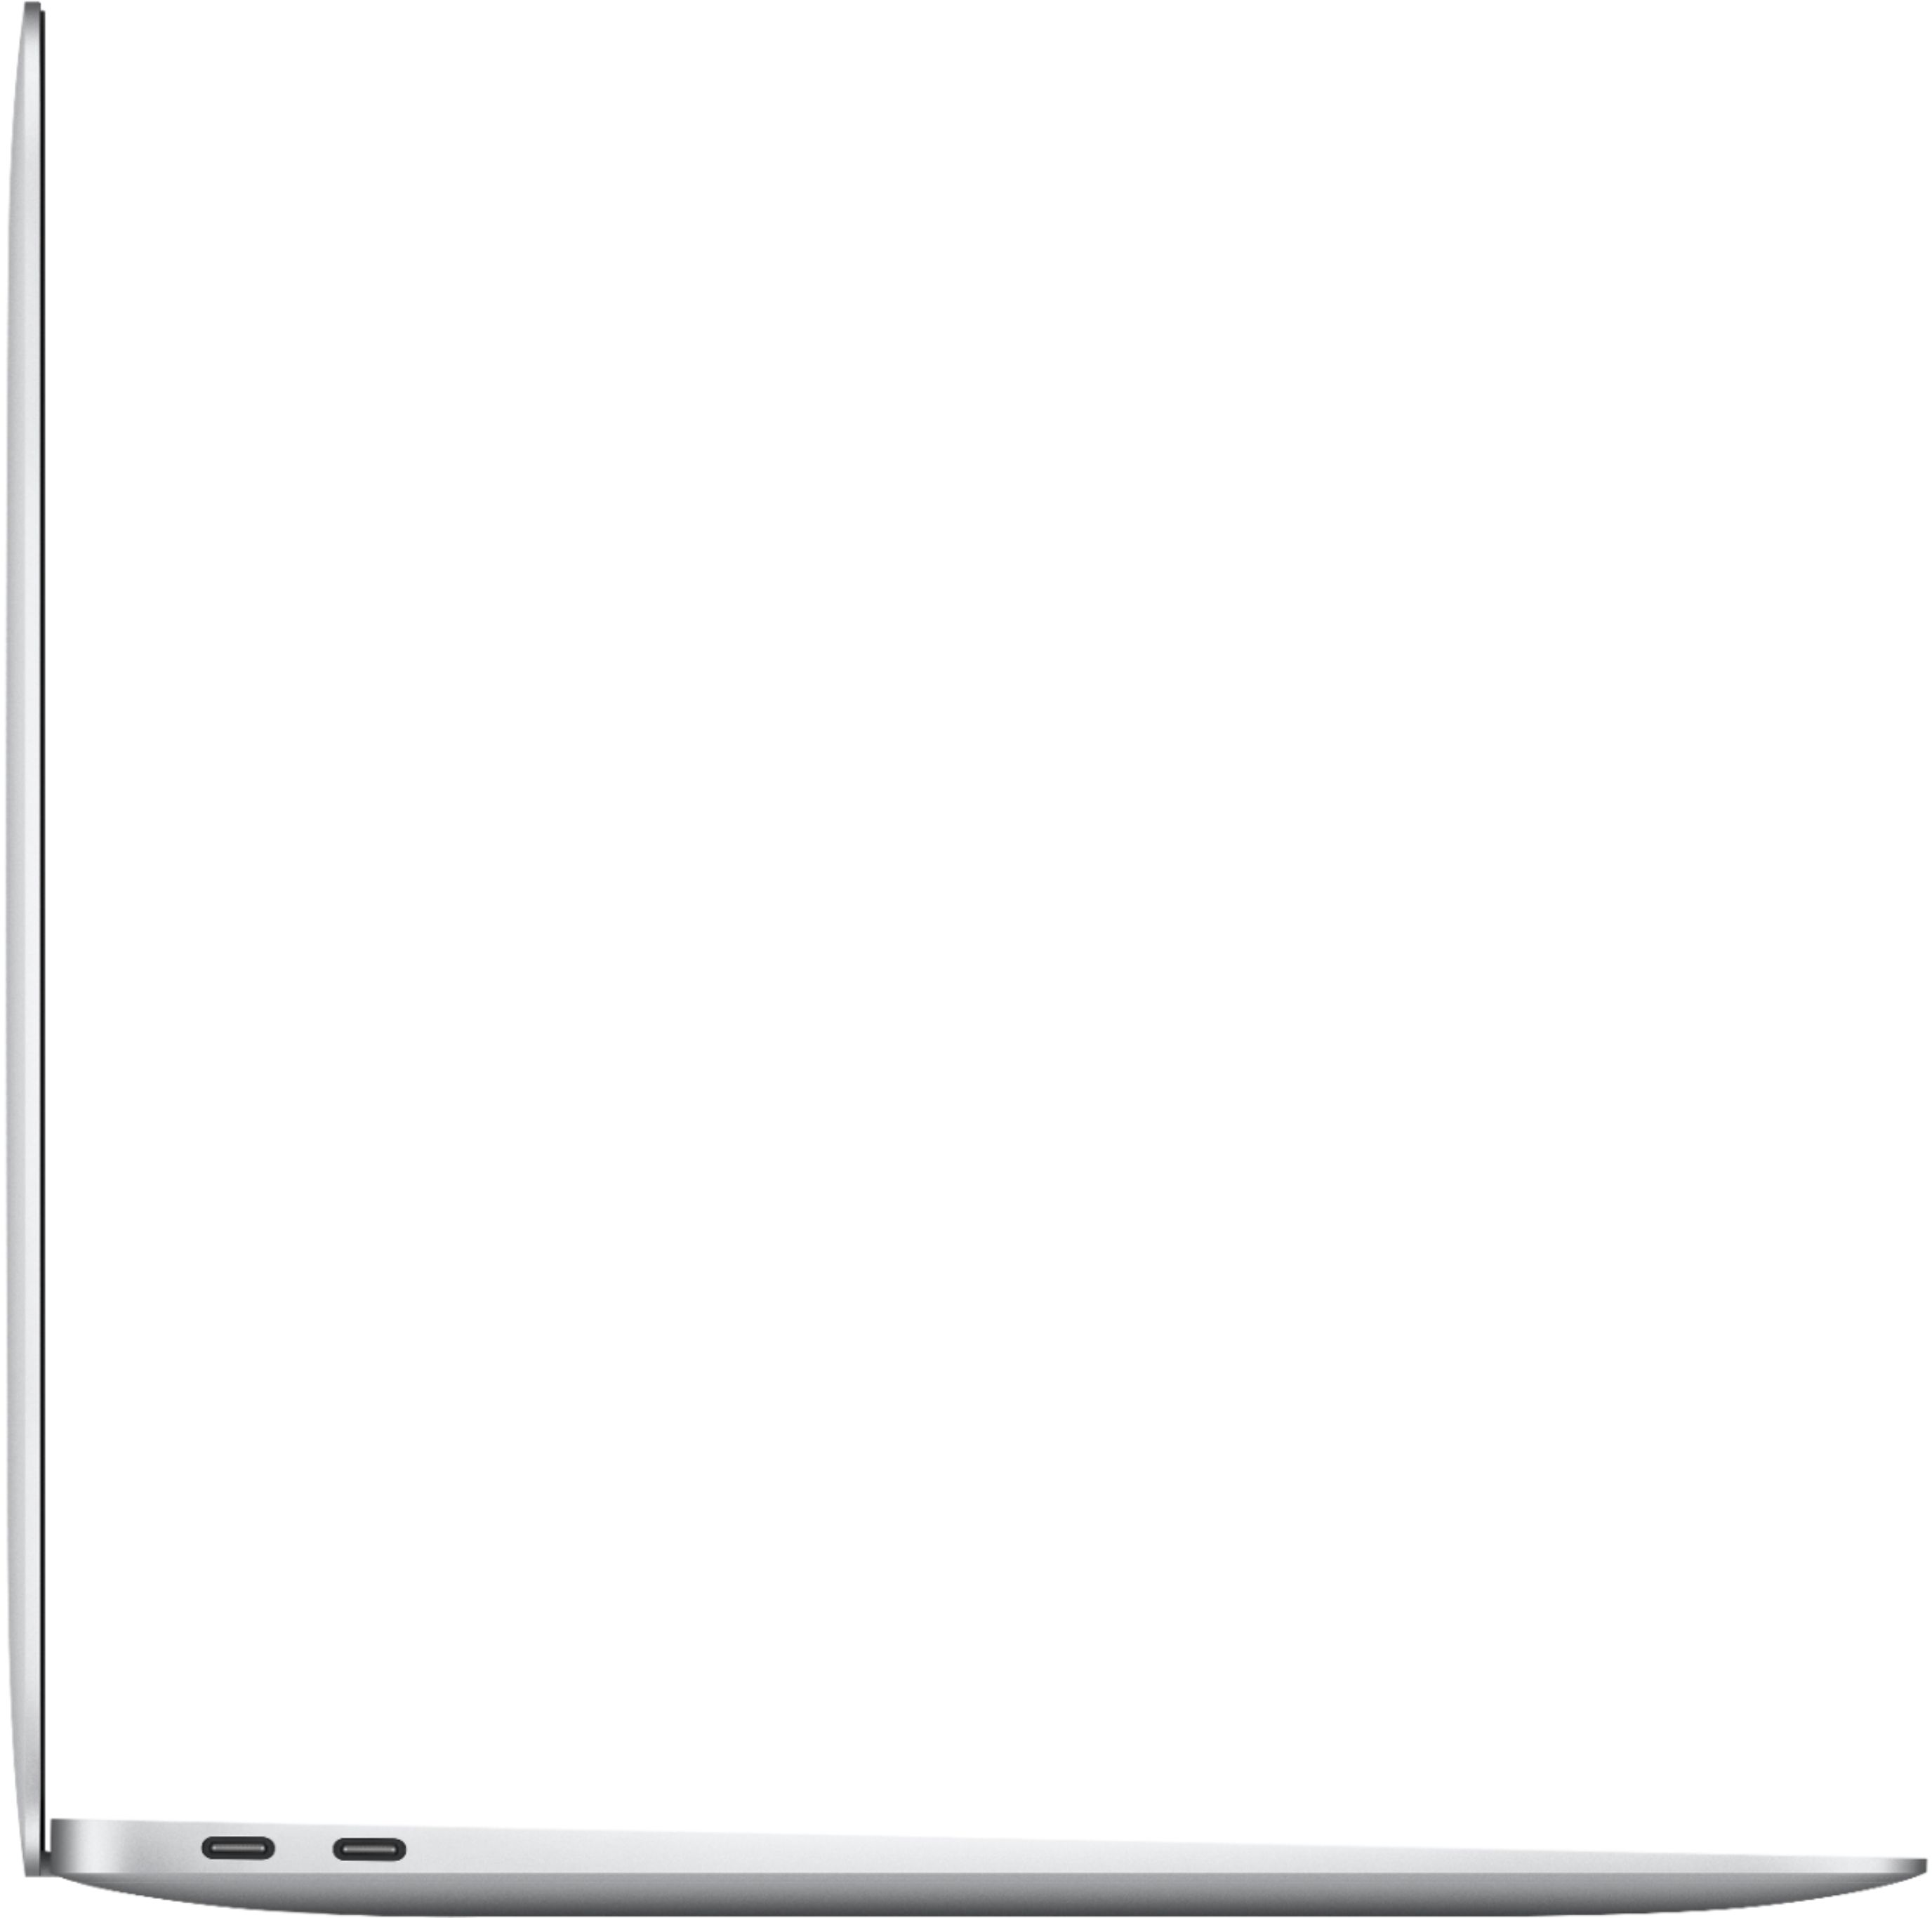 """Alt View Zoom 13. MacBook Air 13.3"""" Laptop - Apple M1 chip - 8GB Memory - 256GB SSD (Latest Model) - Silver."""